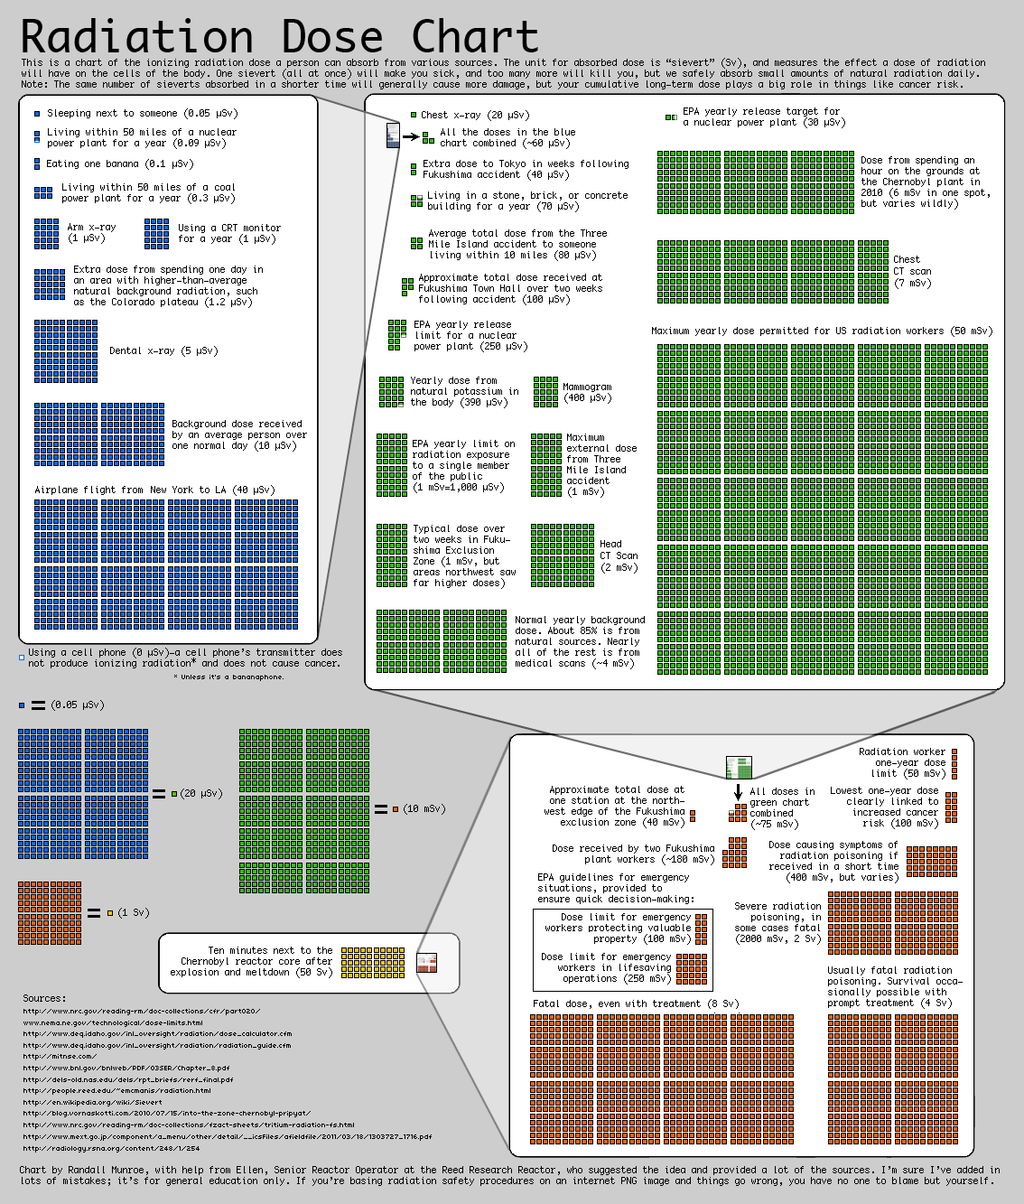 https://upload.wikimedia.org/wikipedia/commons/thumb/2/20/Radiation_Dose_Chart_by_Xkcd.png/1024px-Radiation_Dose_Chart_by_Xkcd.png